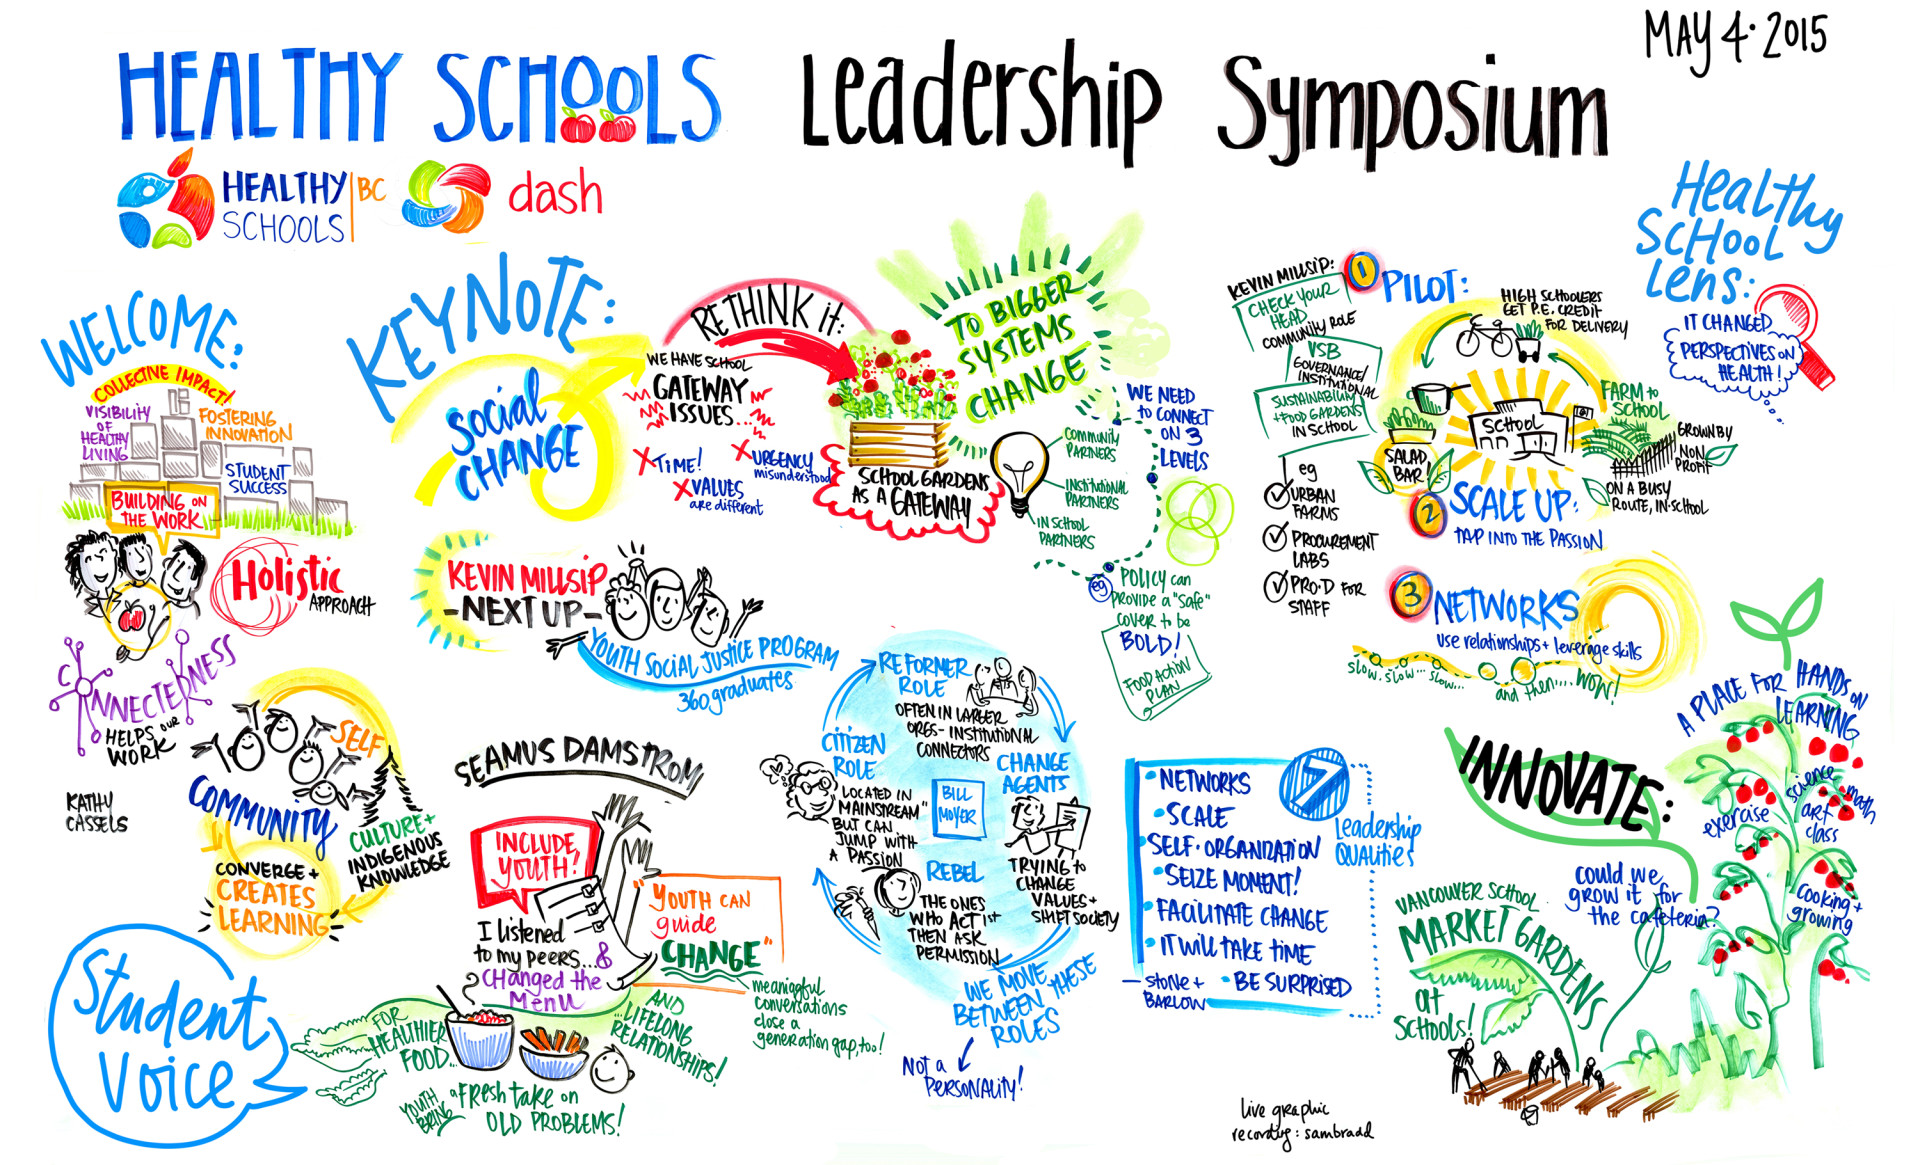 graphic recording, graphic facilitation, healthy schools bc, kevin millsip, next up